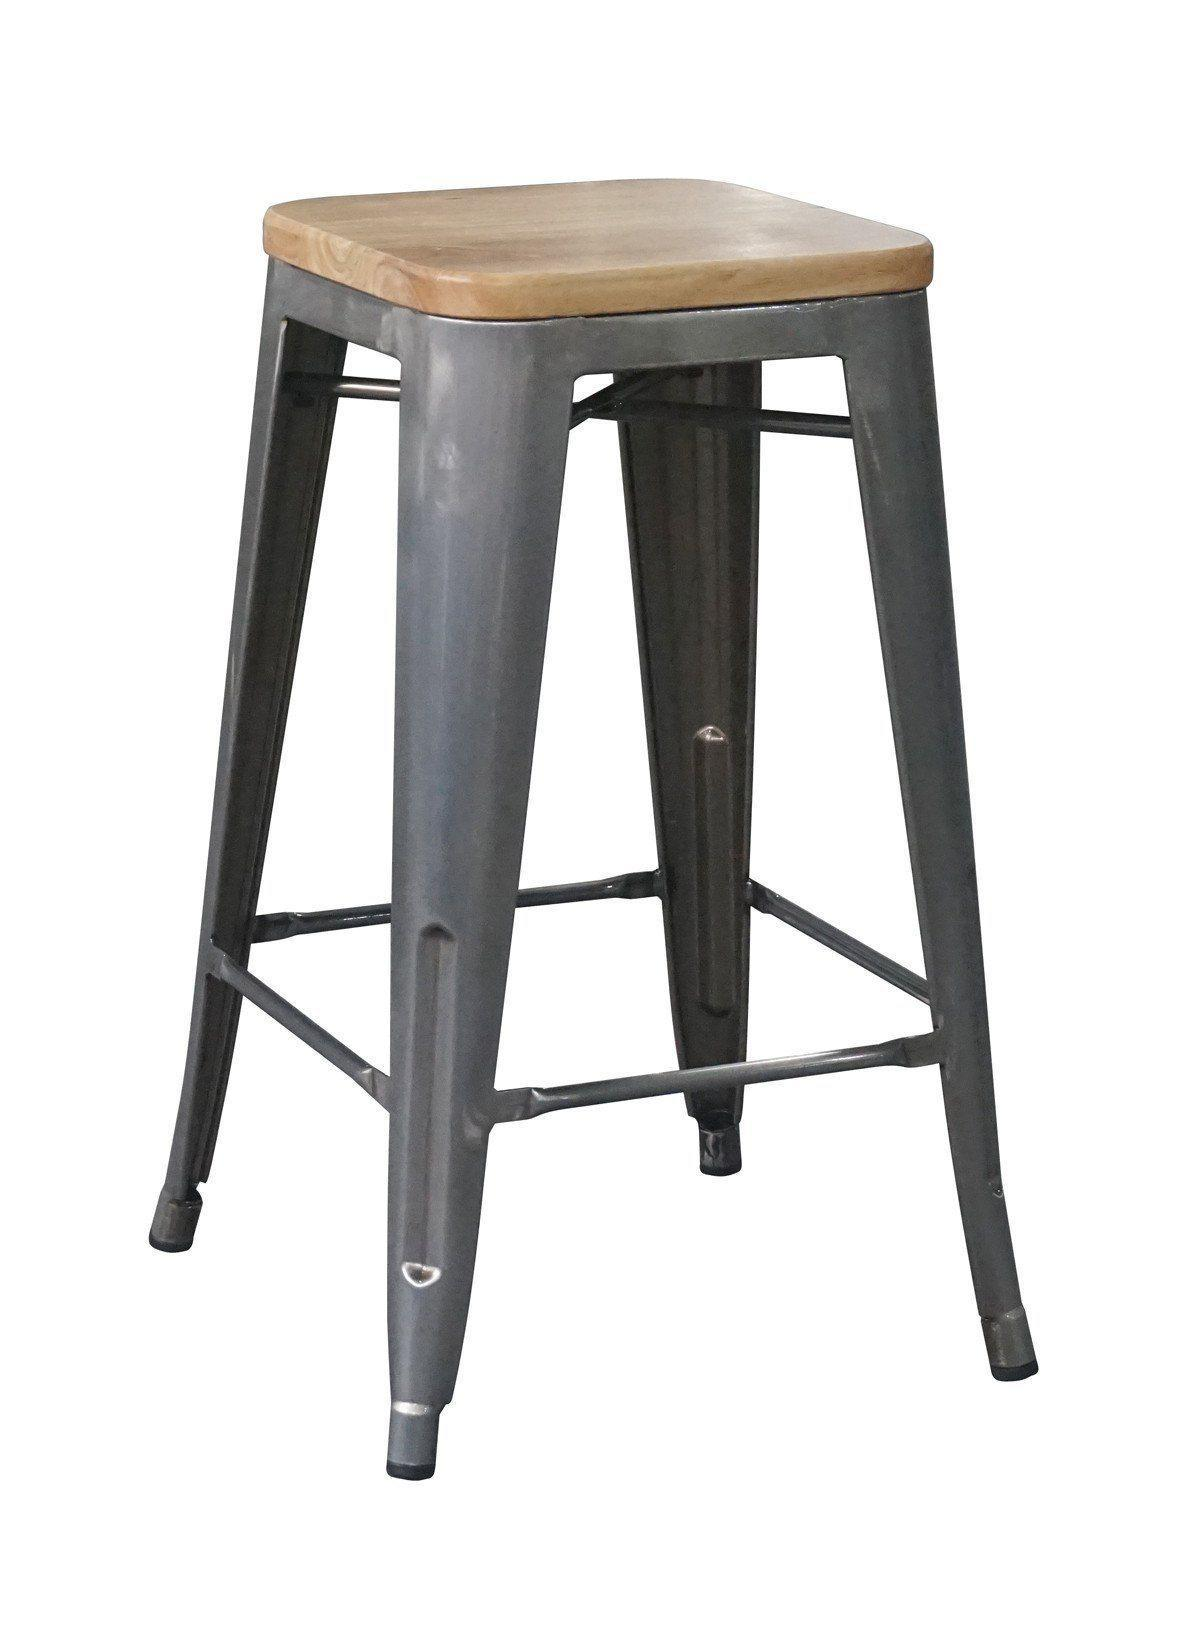 Tolix Bar Stool with Timber seat - Esque